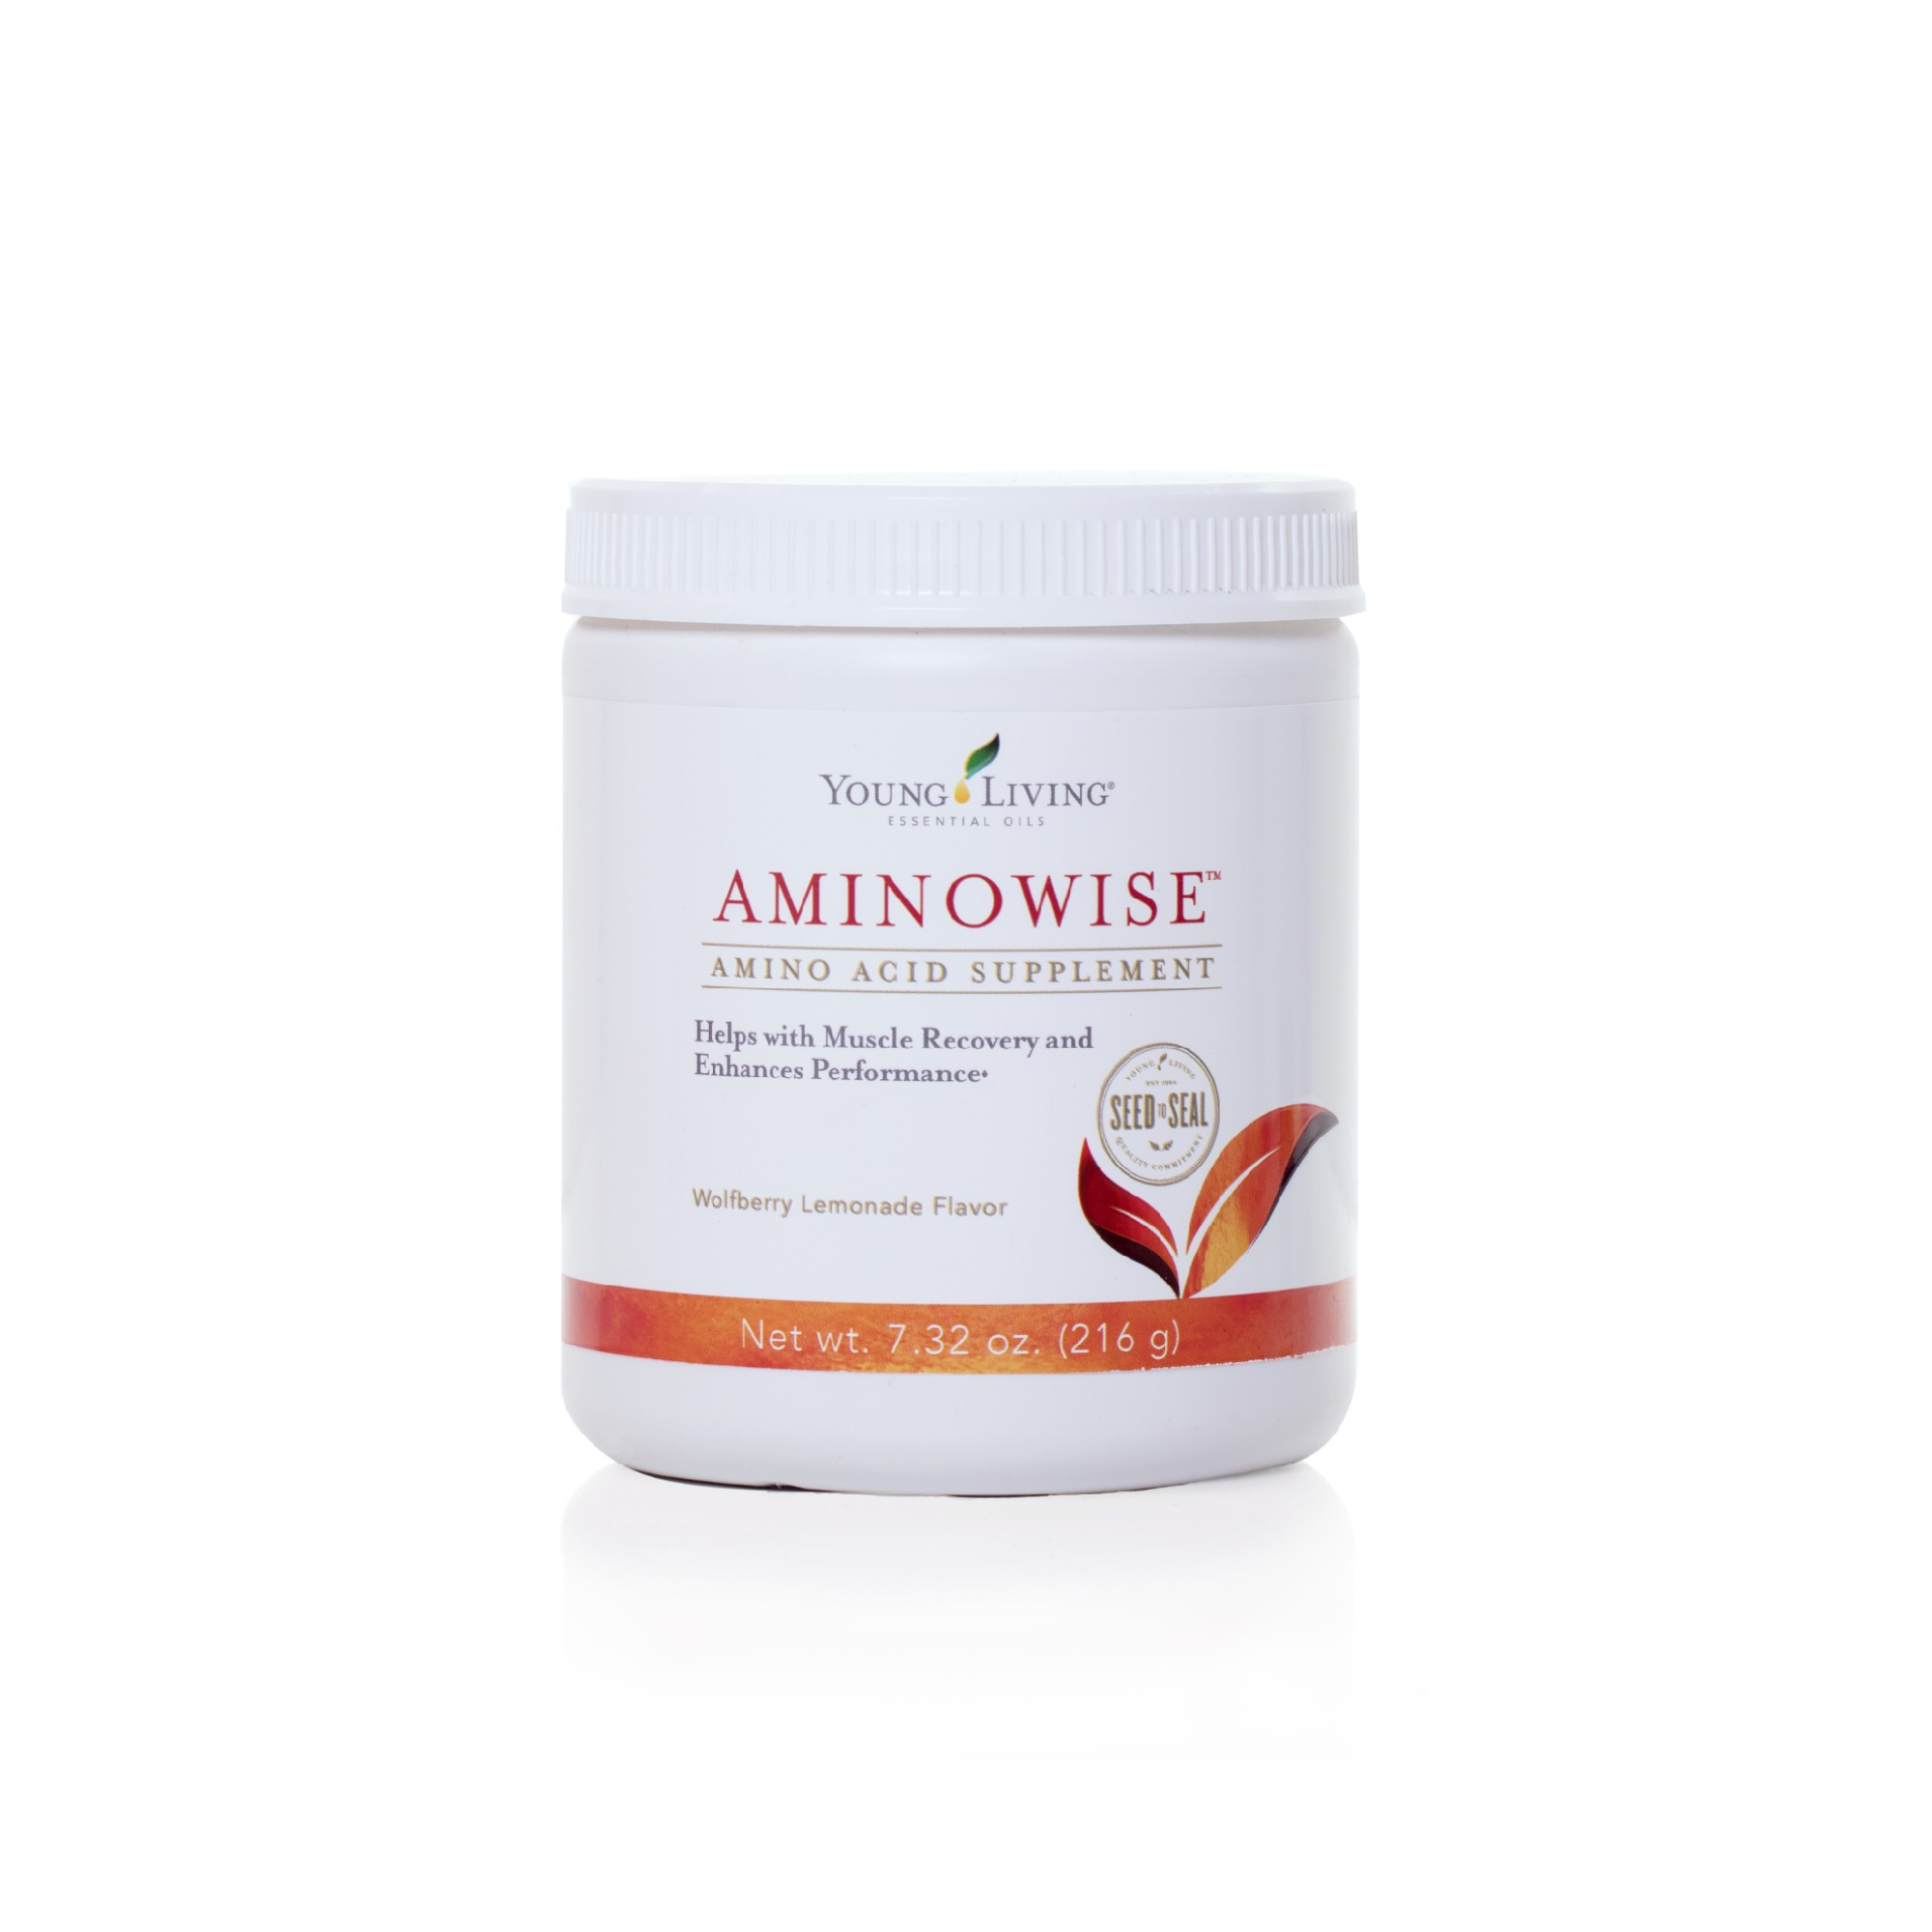 AMINOWISE    Aminowise is a great supplement for muscles. It uses three blends for one powerful result: The Muscle Performance blend aids muscle building and repair, the Recovery blend helps reduce muscle fatigue, and the Hydration Mineral blend replenishes important minerals lost during exercise. Simply mix 1 scoop with water and drink immediately after your workout to ensure that you're getting the most out of your hard work. Contains no added sugars, artificial sweeteners, preservatives, or artificial colors or flavors.   Click here   to learn more about this product.